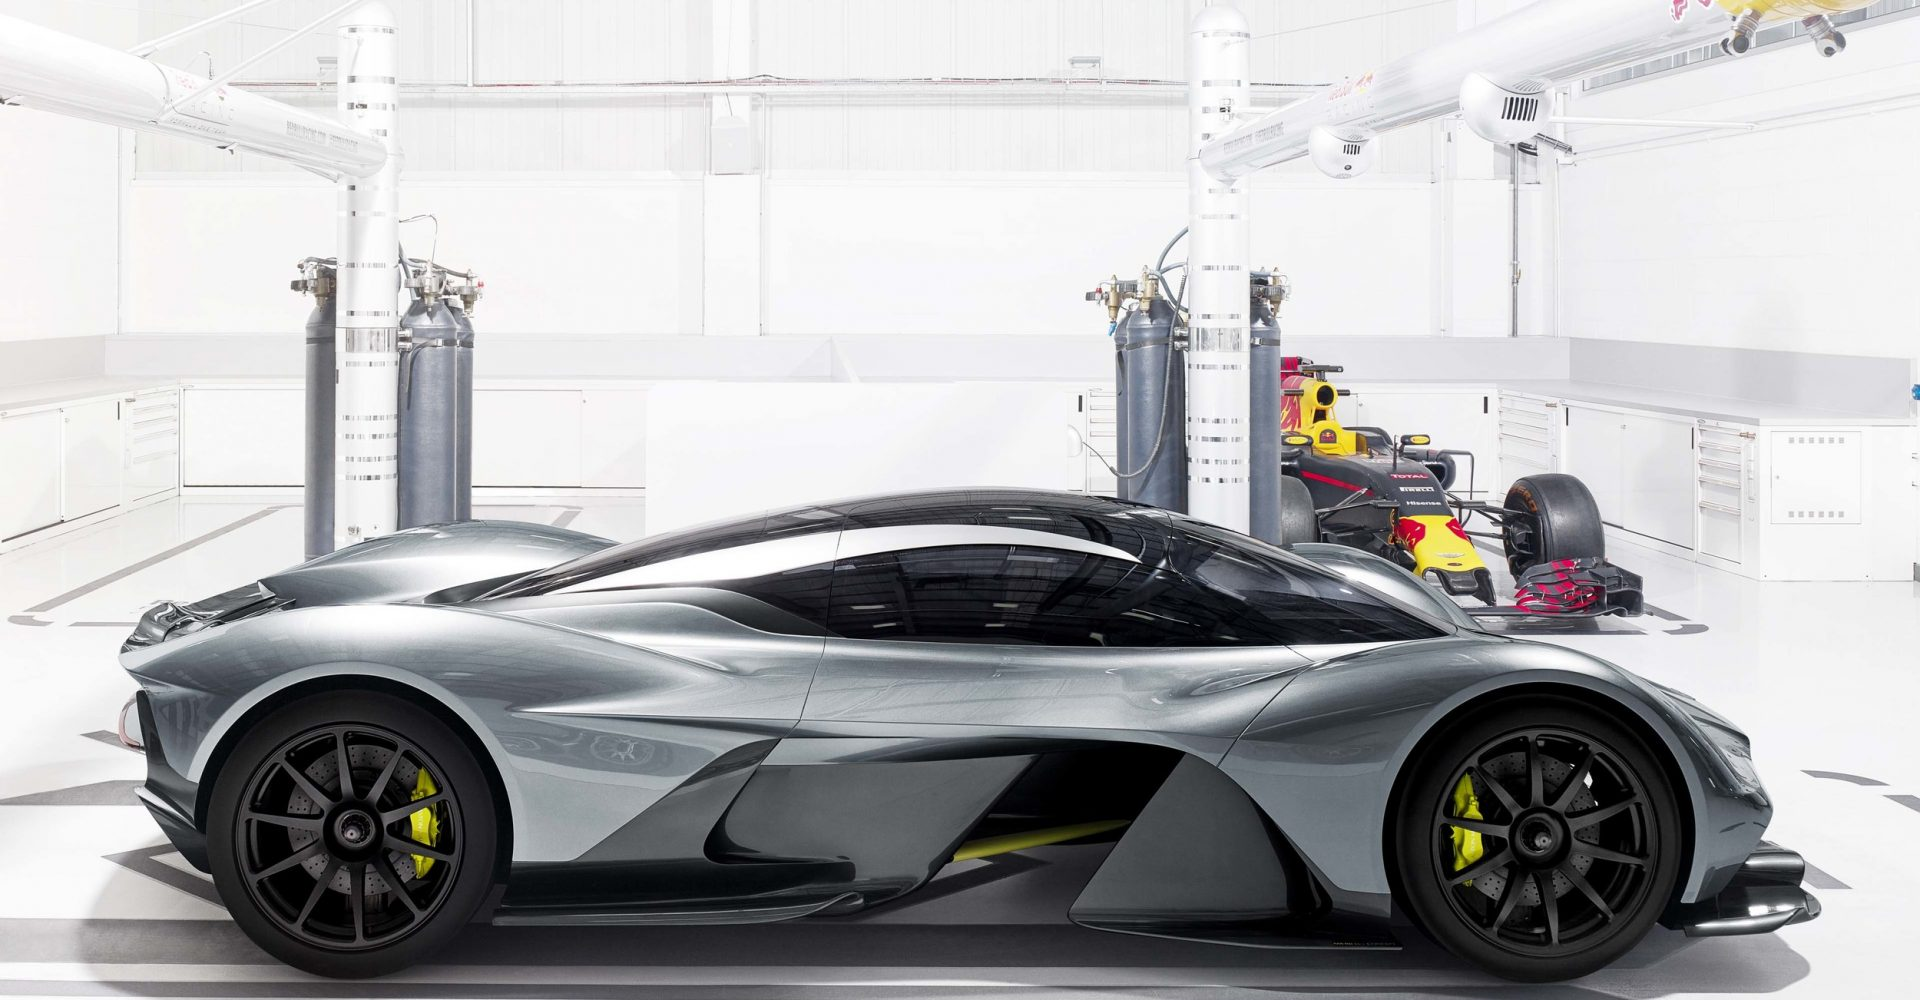 More Details About The New Aston Martin Hypercar Are Released